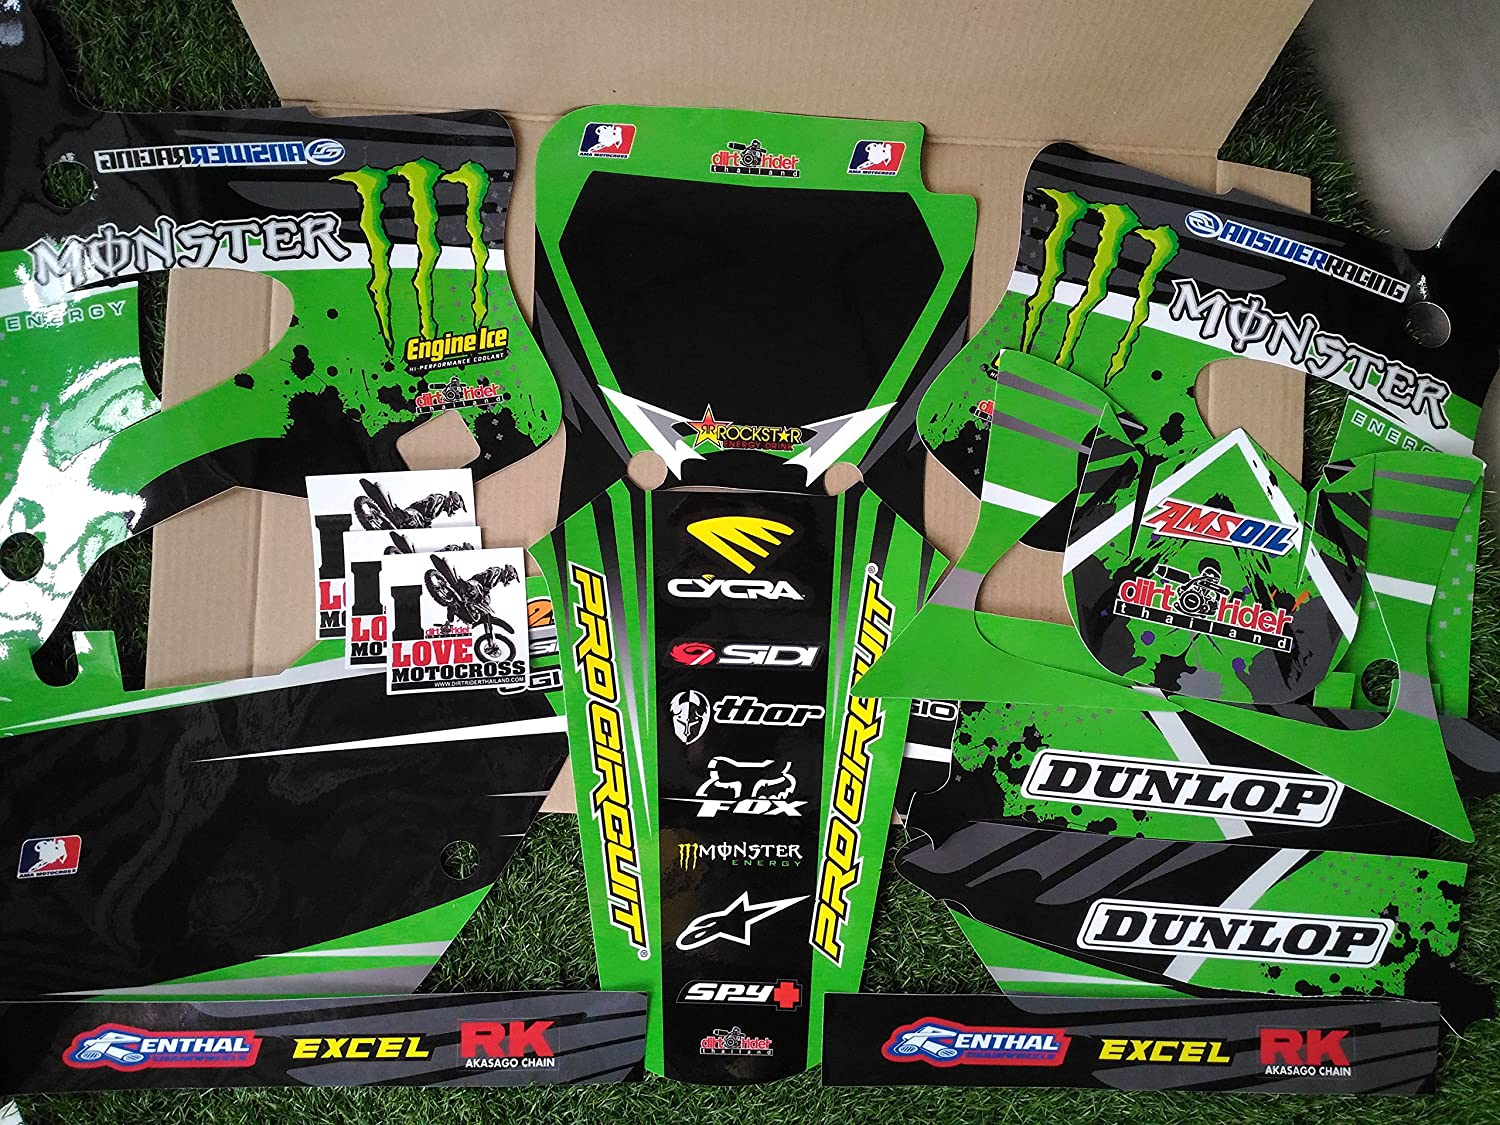 Amazon.com: 7067 KAWASAKI KX 125-250 1994-1998 DECALS ...